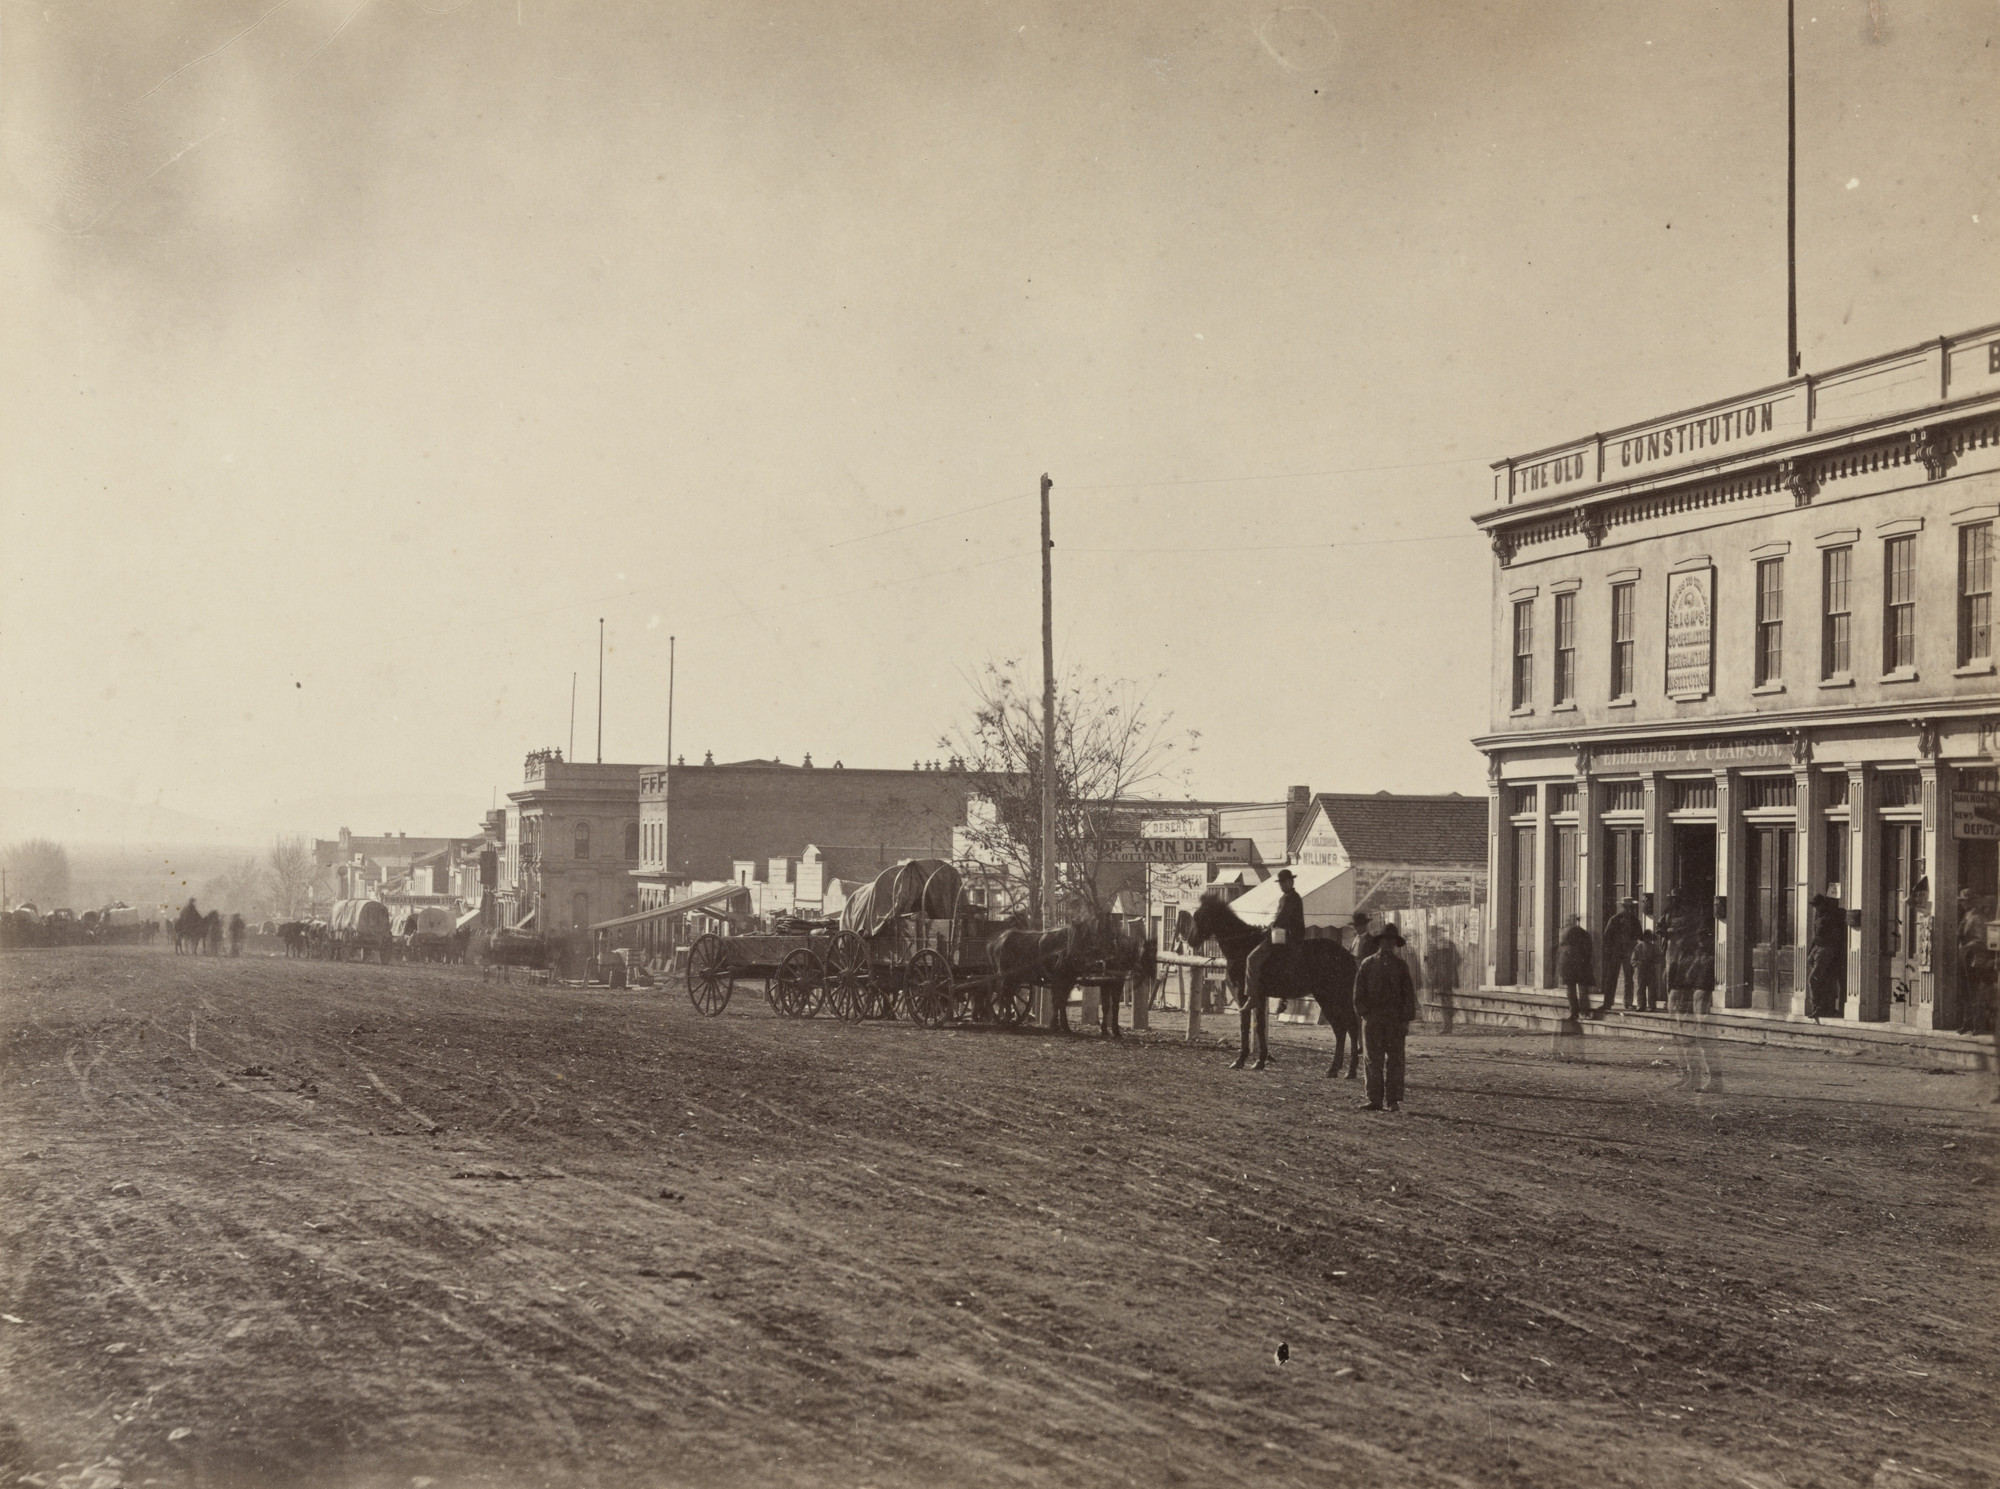 Andrew Joseph Russell. Zion's Cooperative Mercantile Institution. 1868